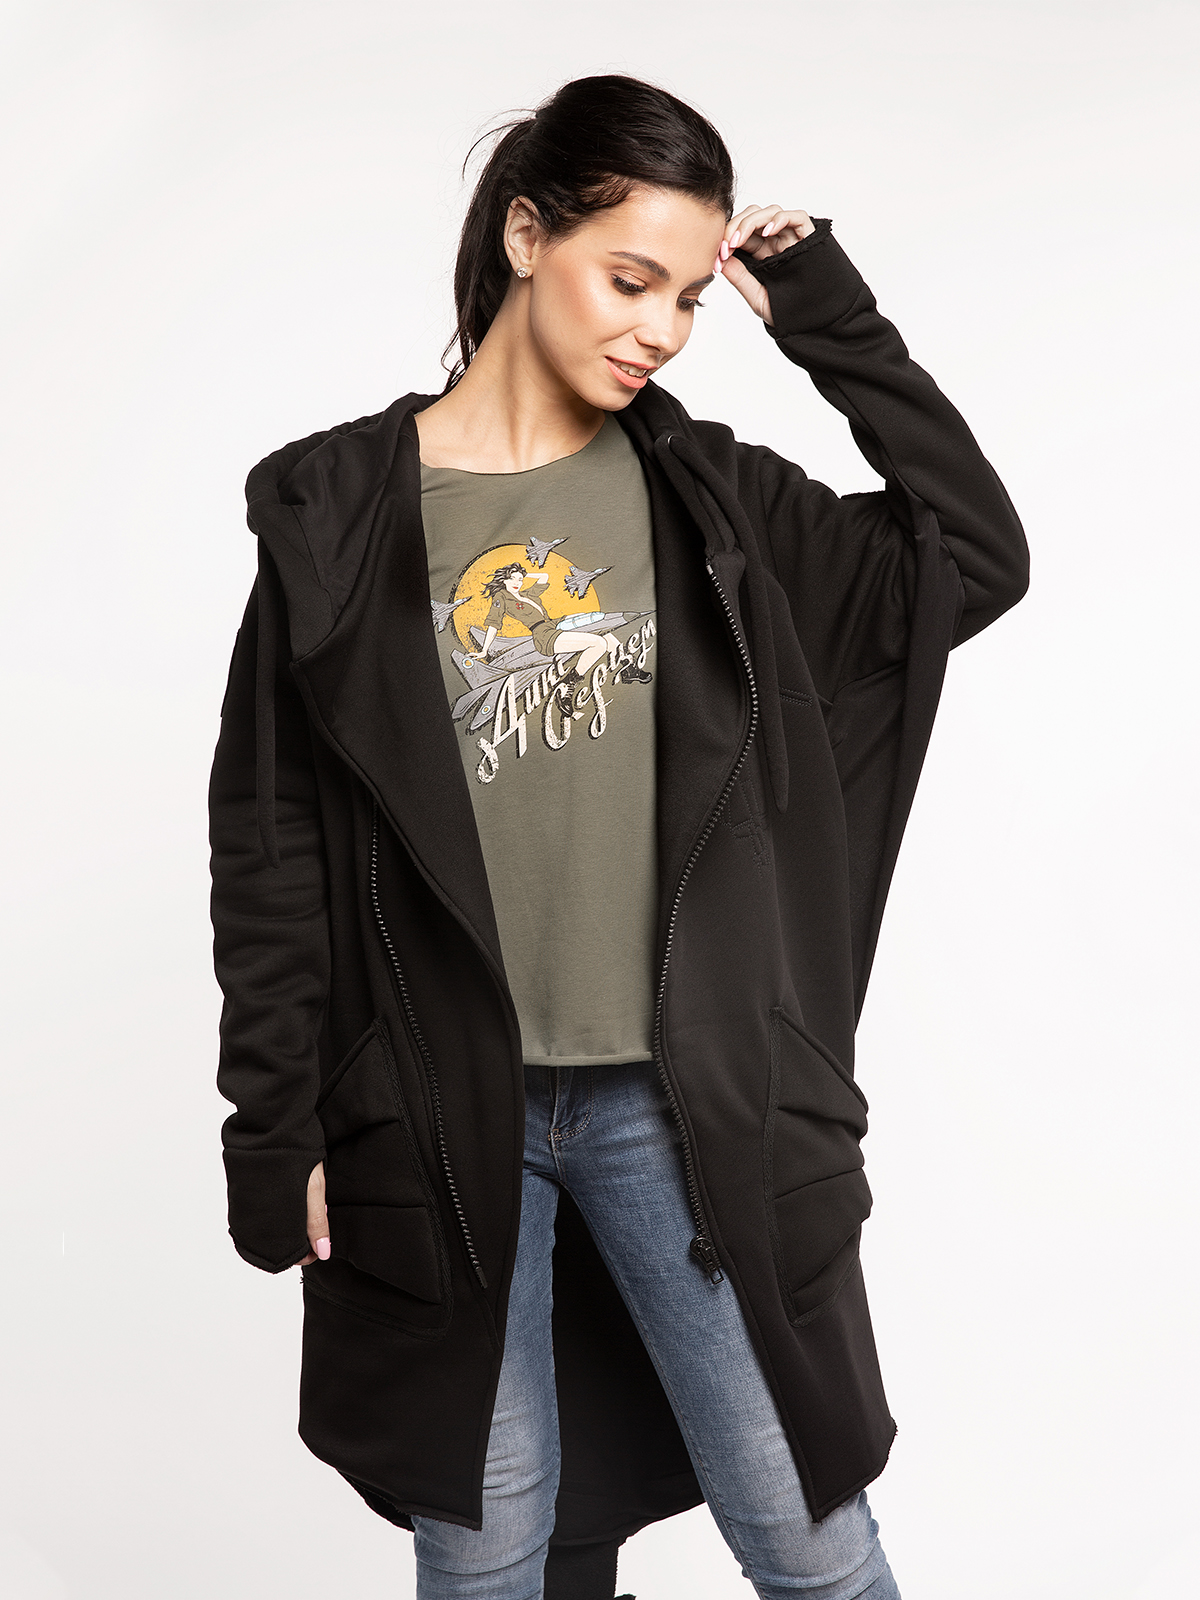 Women's Hoodie Dragon. Color black. 17.